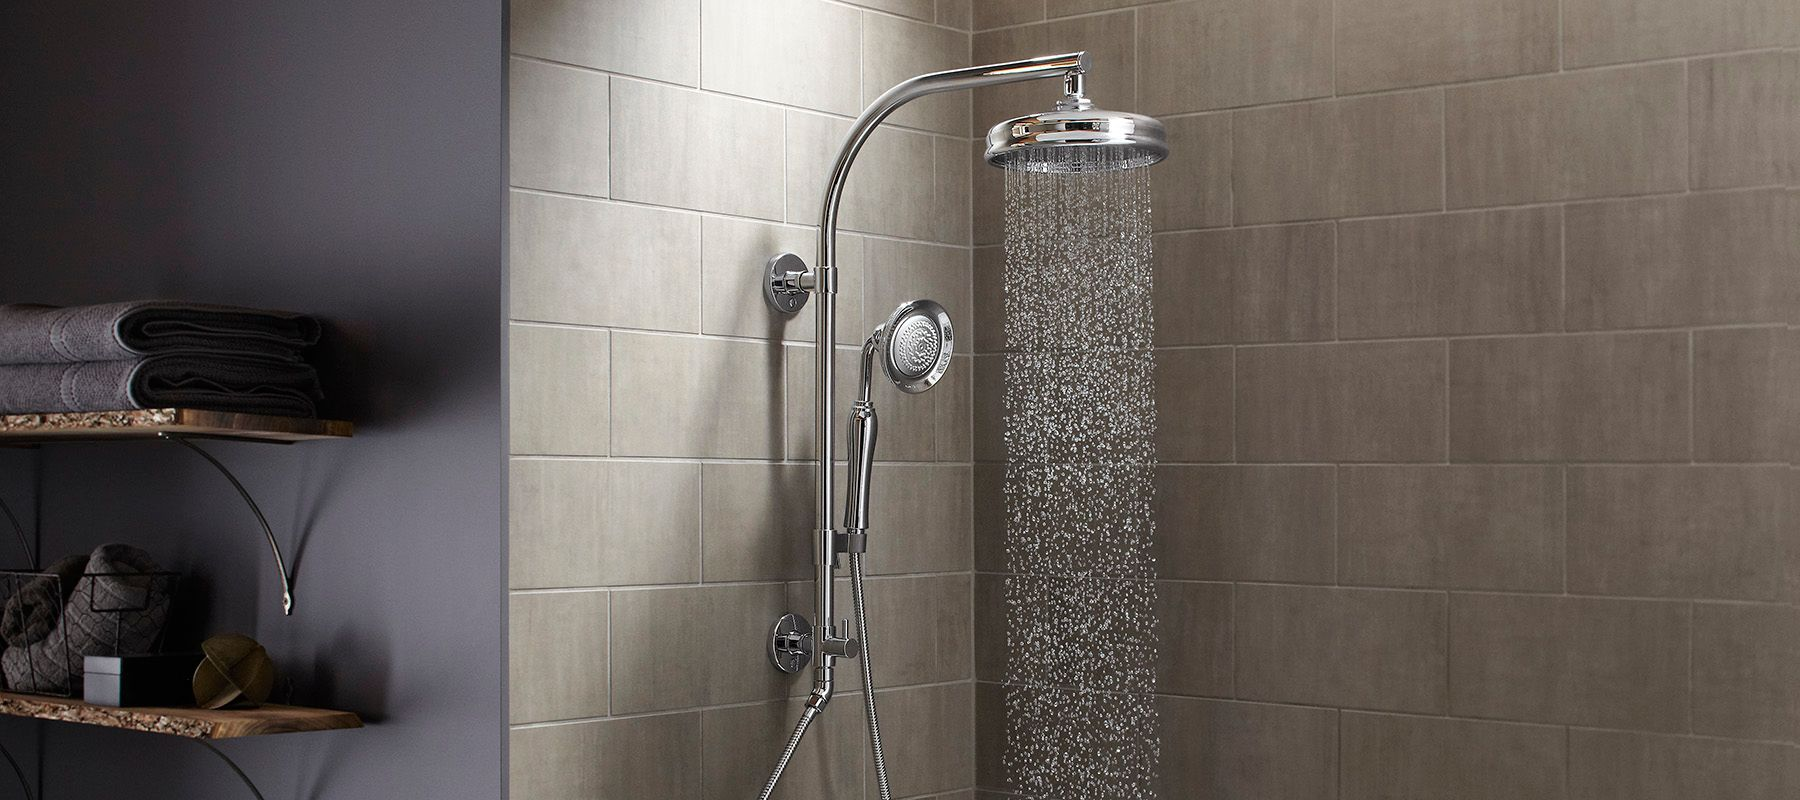 rain shower head with wand. HydroRail Shower Columns Rainheads  Showerheads Handshowers Bodysprays Showering